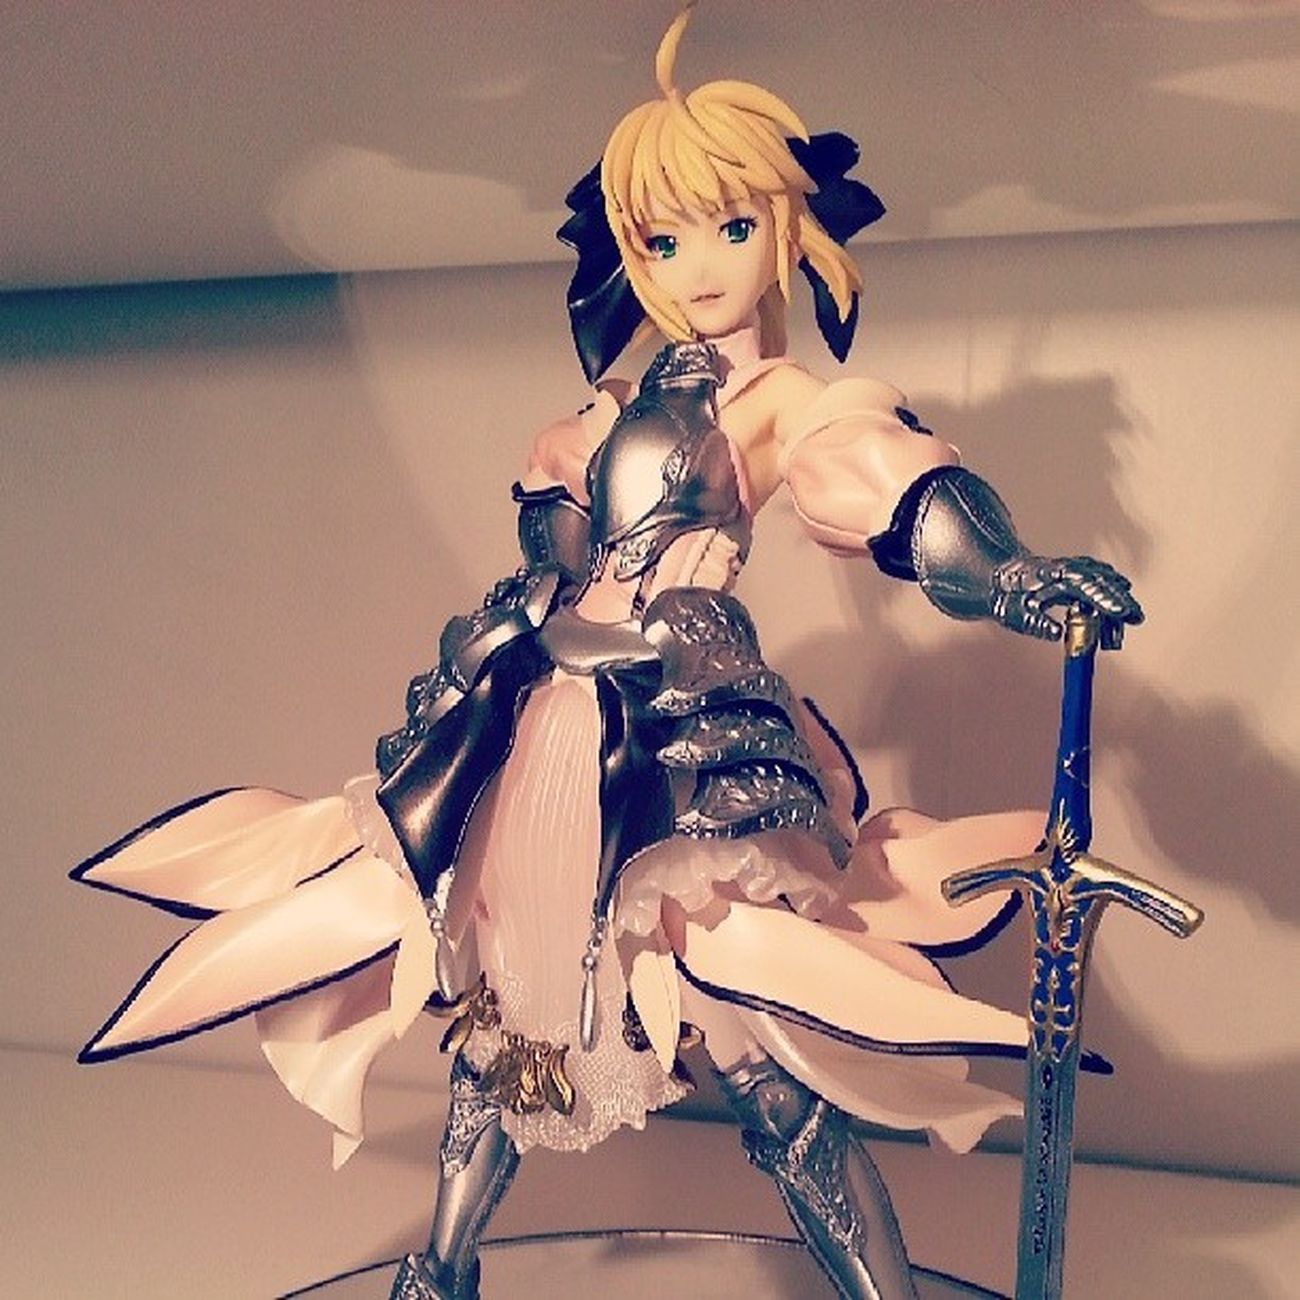 Saber Lily (Fate/Stay Night, Fate/Unlimited Codes) by GIFT SaberLily Saber FateStayNight FateUnlimitedCodes figure anime manga GIFT